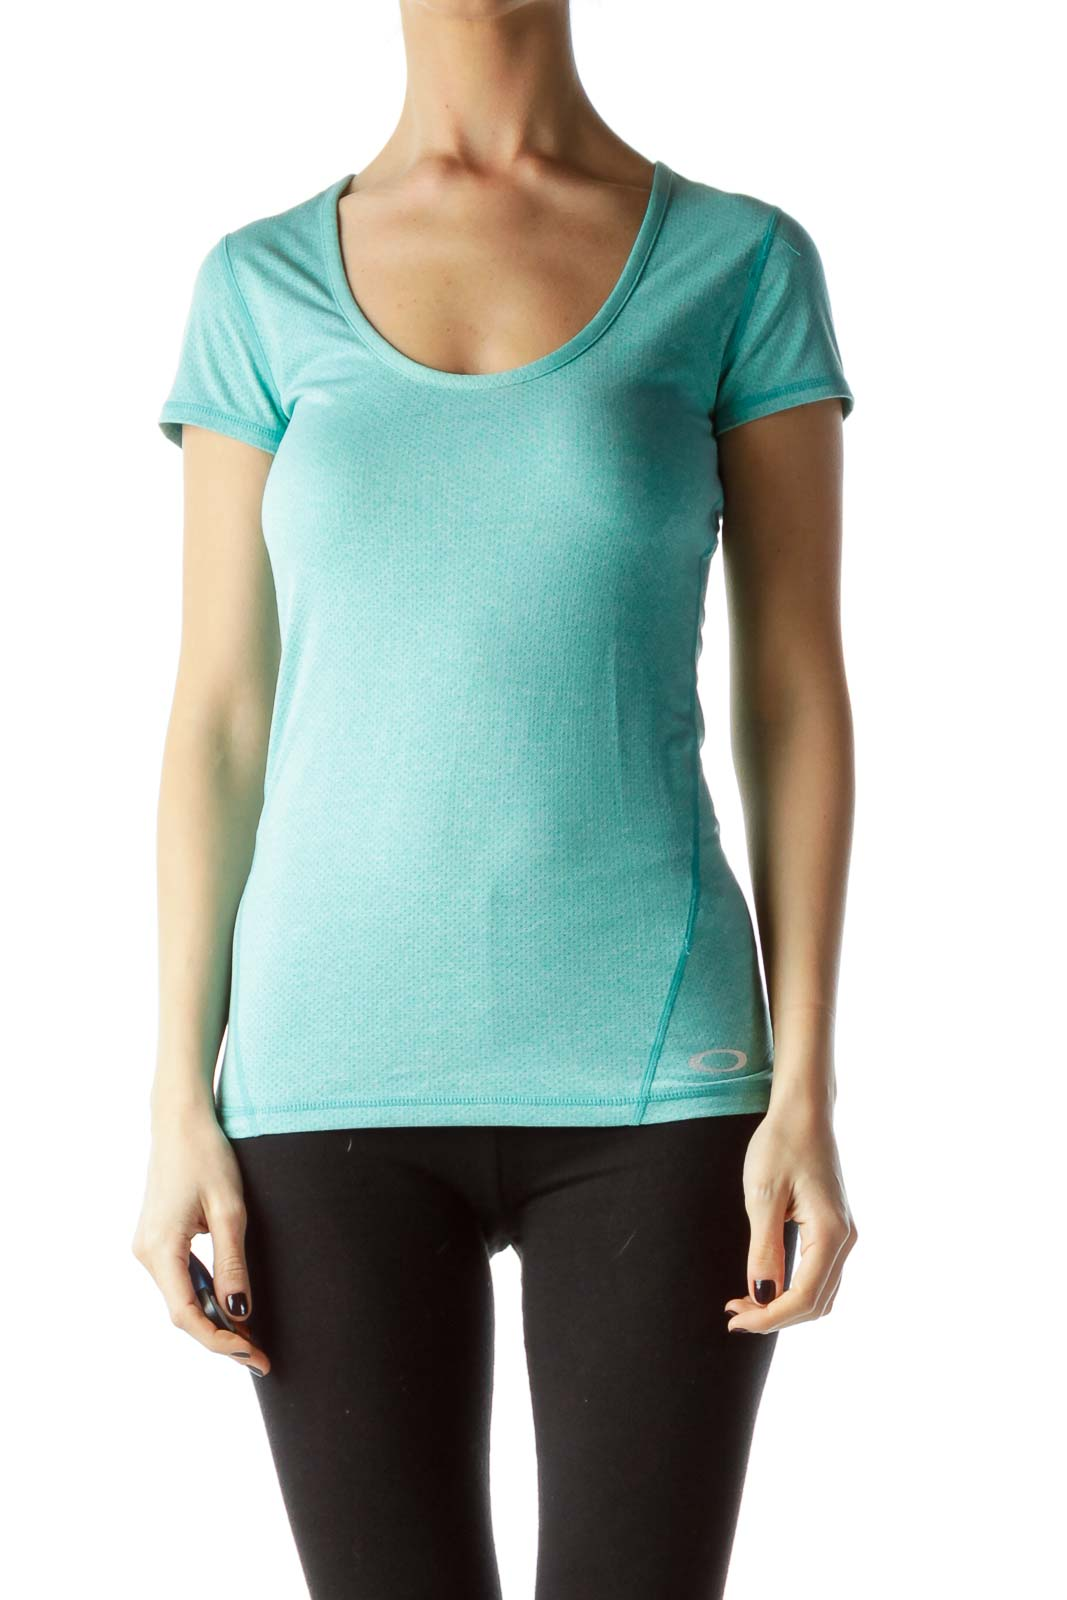 Teal Blue Short Sleeve Stretchy Sports Top Front